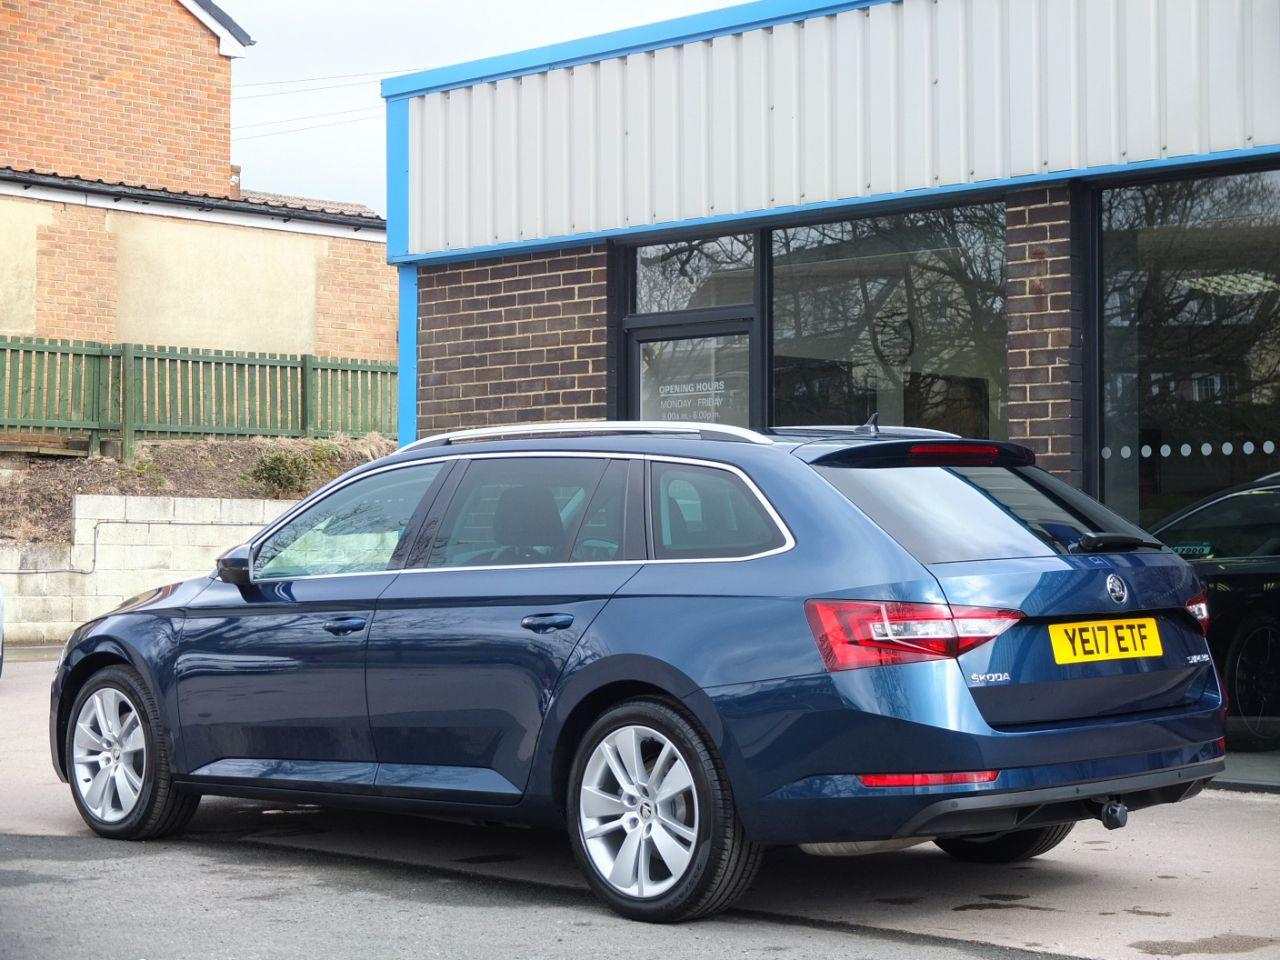 Skoda Superb Estate 1.4 TSI ACT 150ps SE L Executive DSG Auto Estate Petrol Petrol Blue Metallic